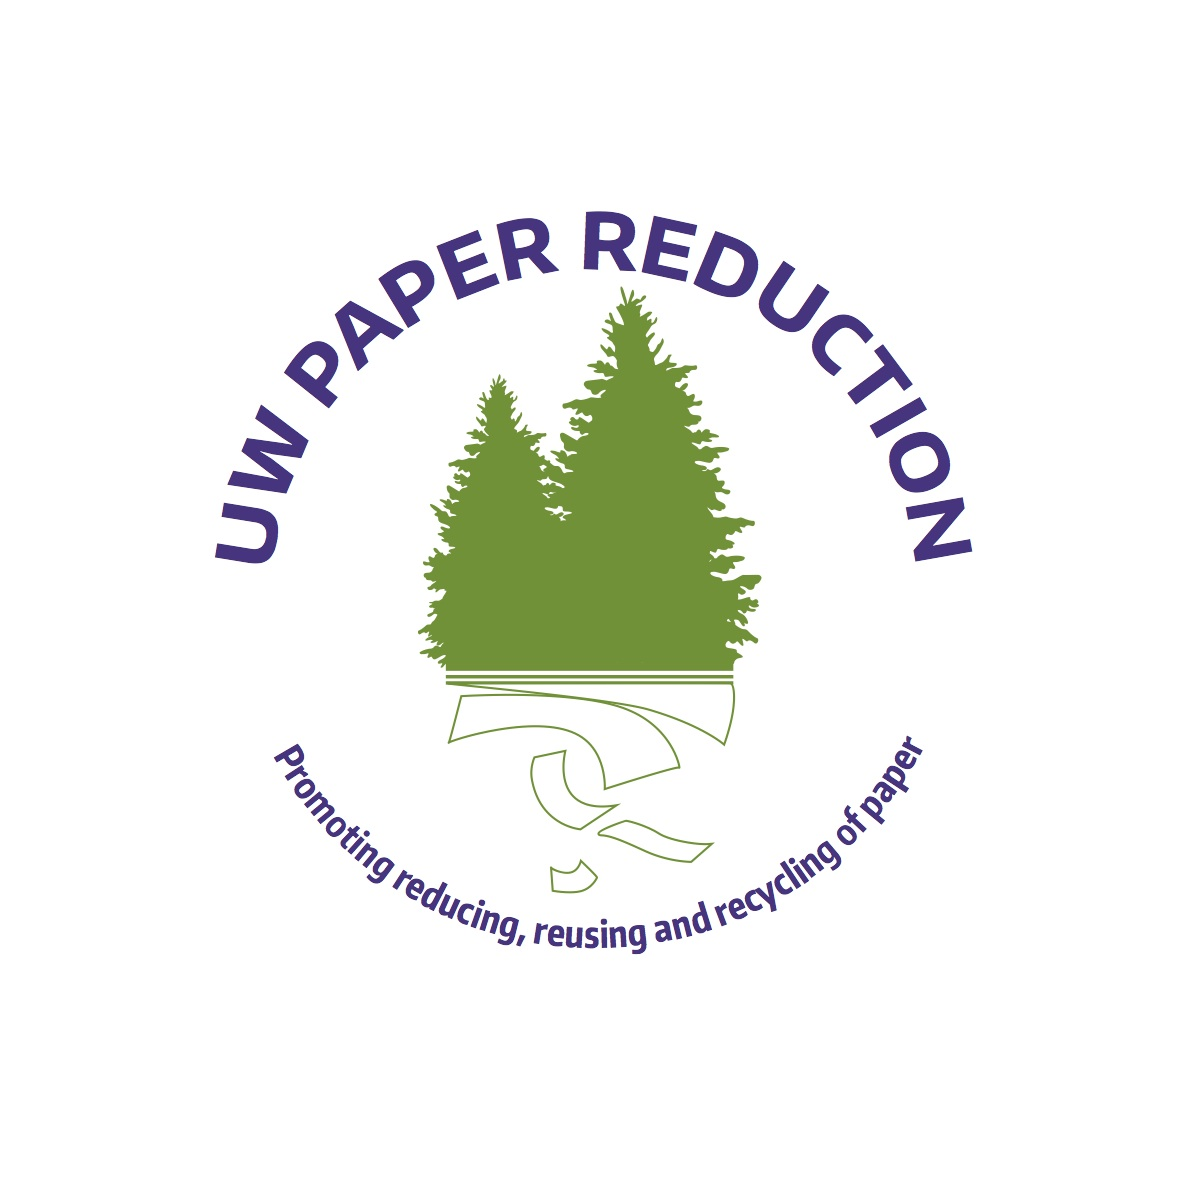 Paper Reduction logo2